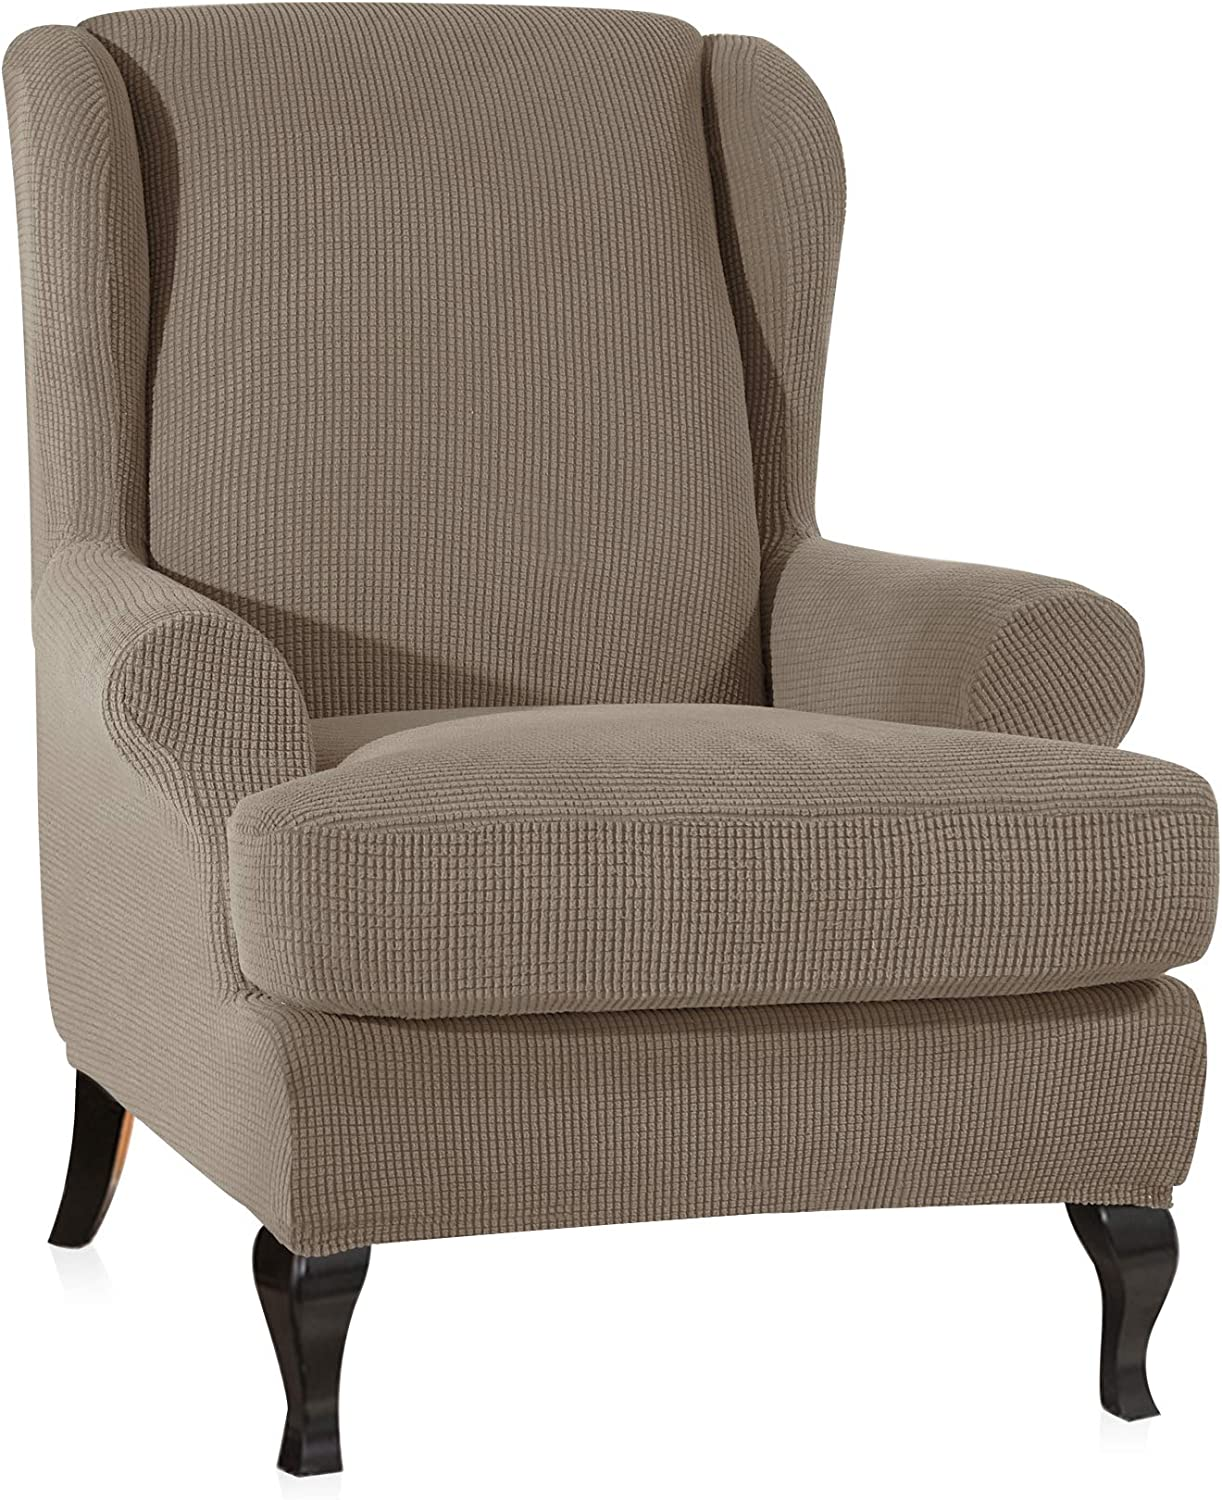 CHUN YI 2-Piece Stretch Jacquard Spandex Fabric Wing Back Wingback Armchair Chair Slipcovers (Sand, Wing Chair)